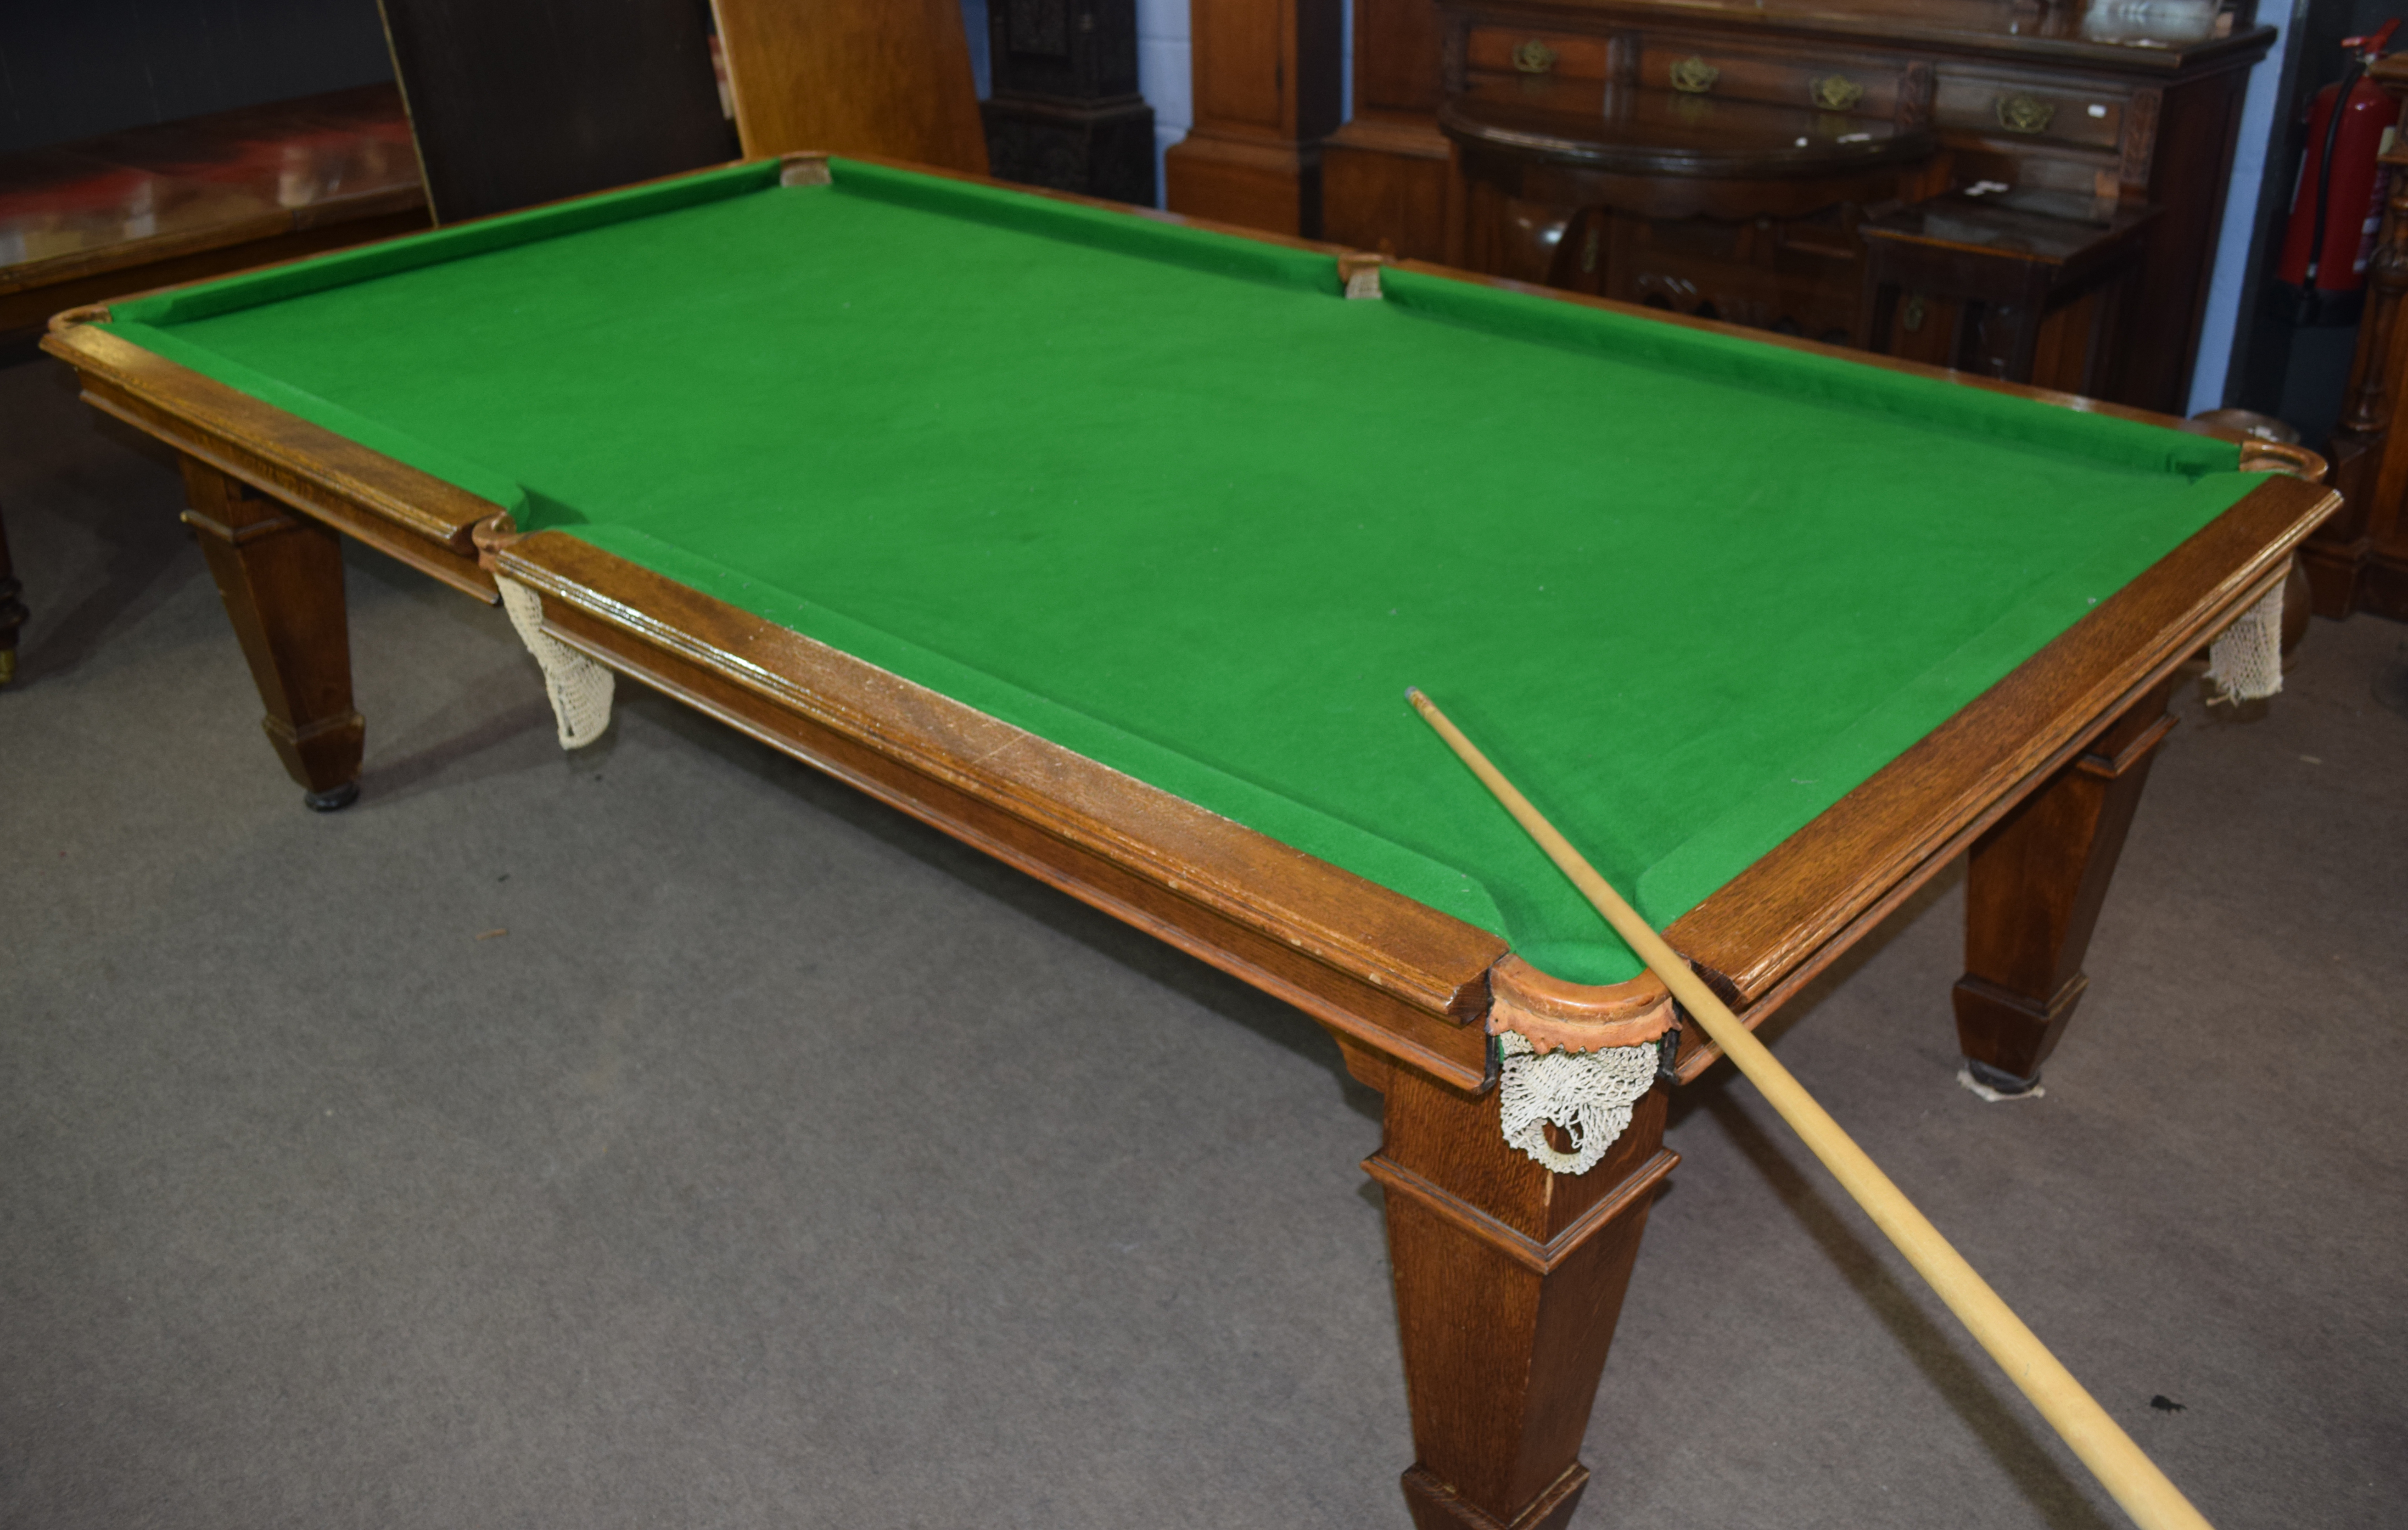 Oak frame and slate bed, quarter size snooker table with leaves adapting it to a dining table - Image 2 of 6